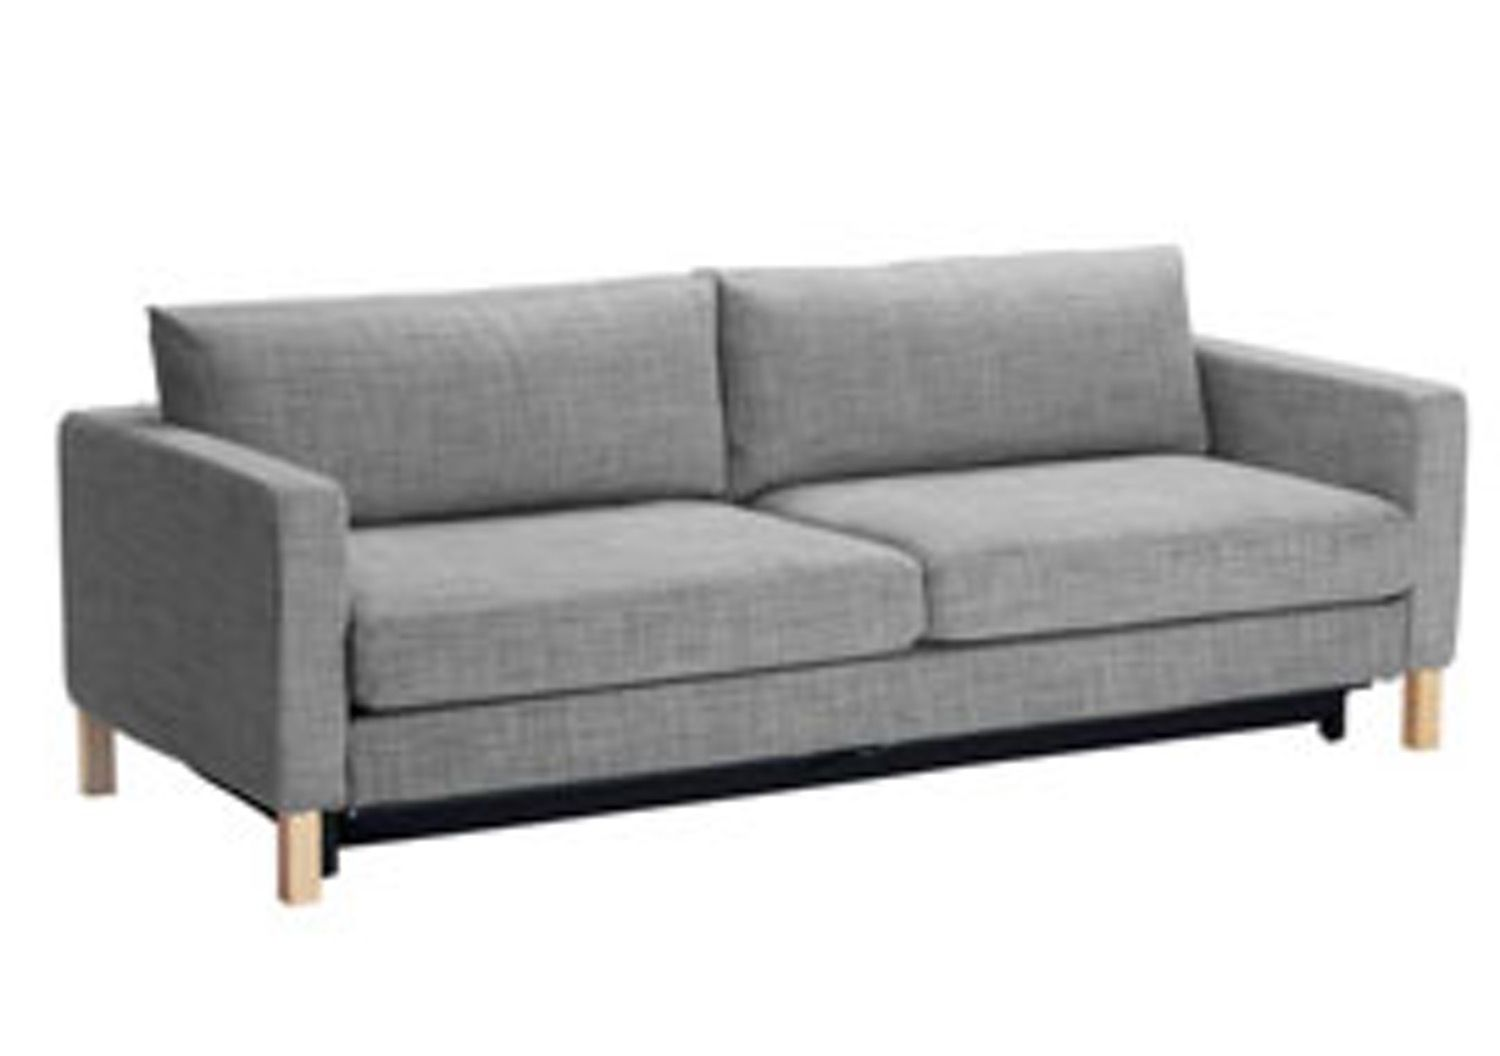 Ideas For Getting A Sleeper Sofa Into